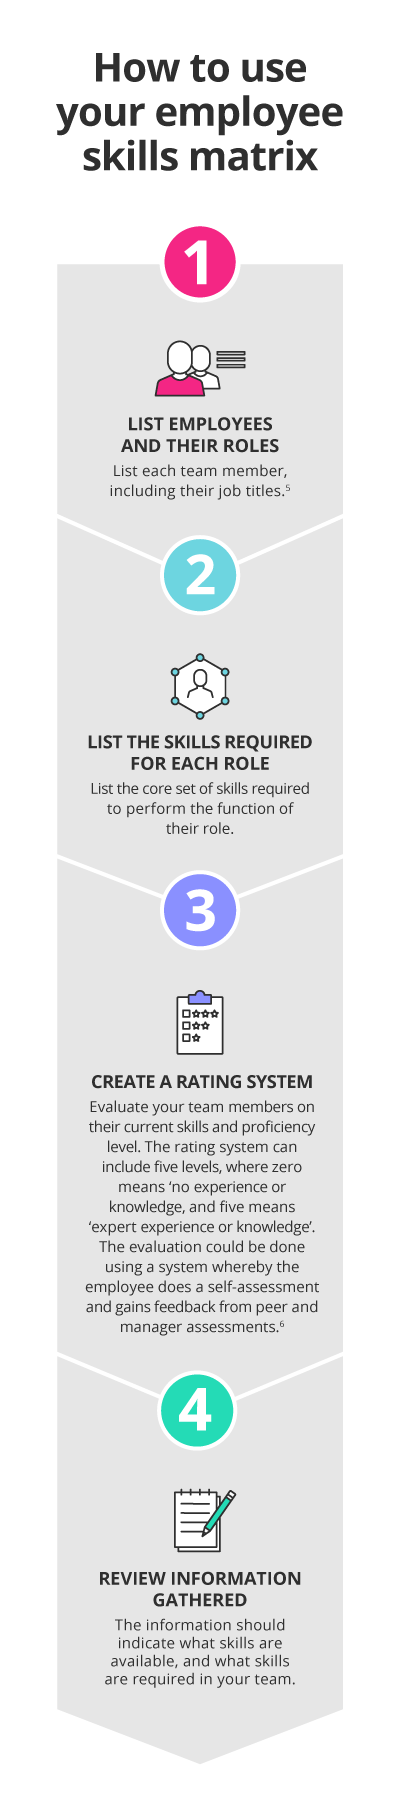 How to use your employee skills matrix